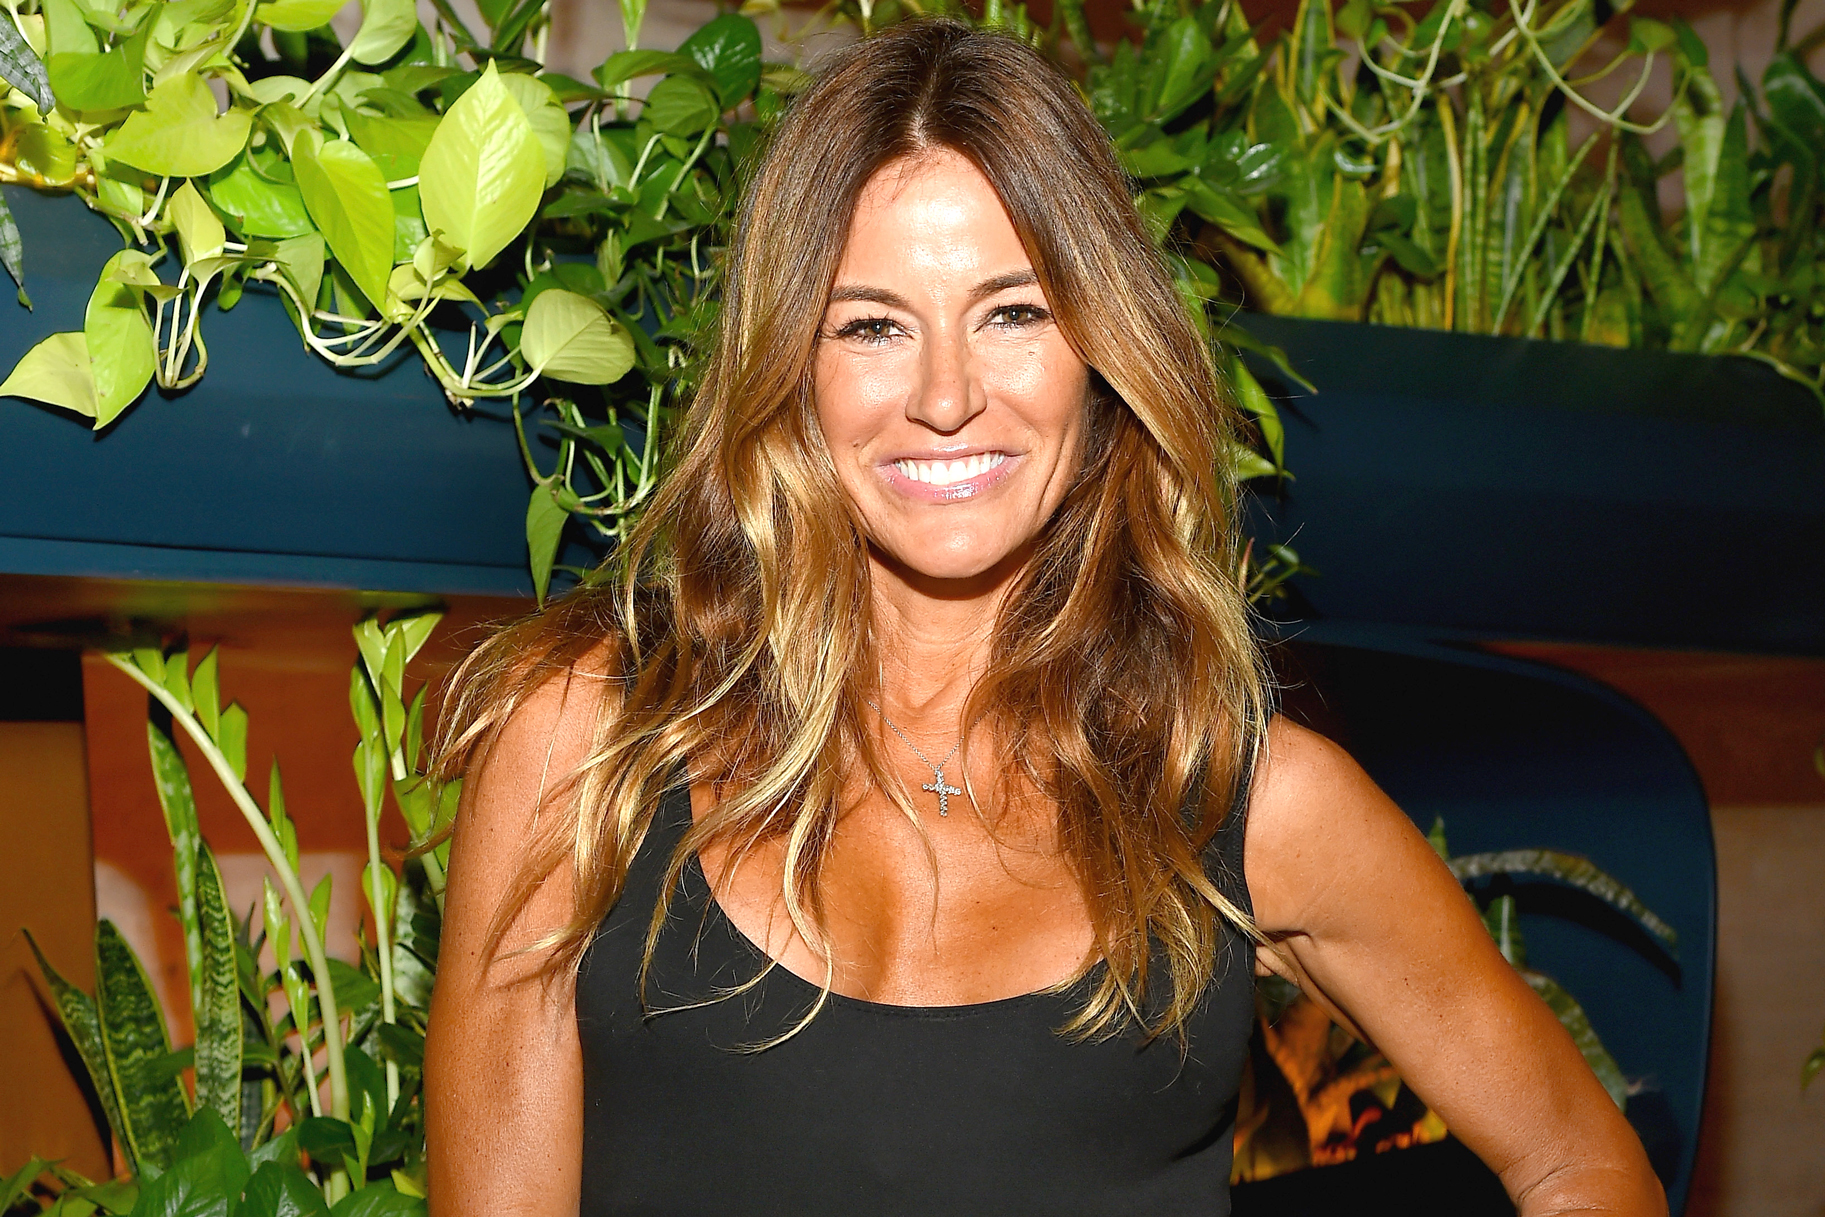 ICloud Kelly Bensimon naked (61 photo), Sexy, Hot, Twitter, butt 2015